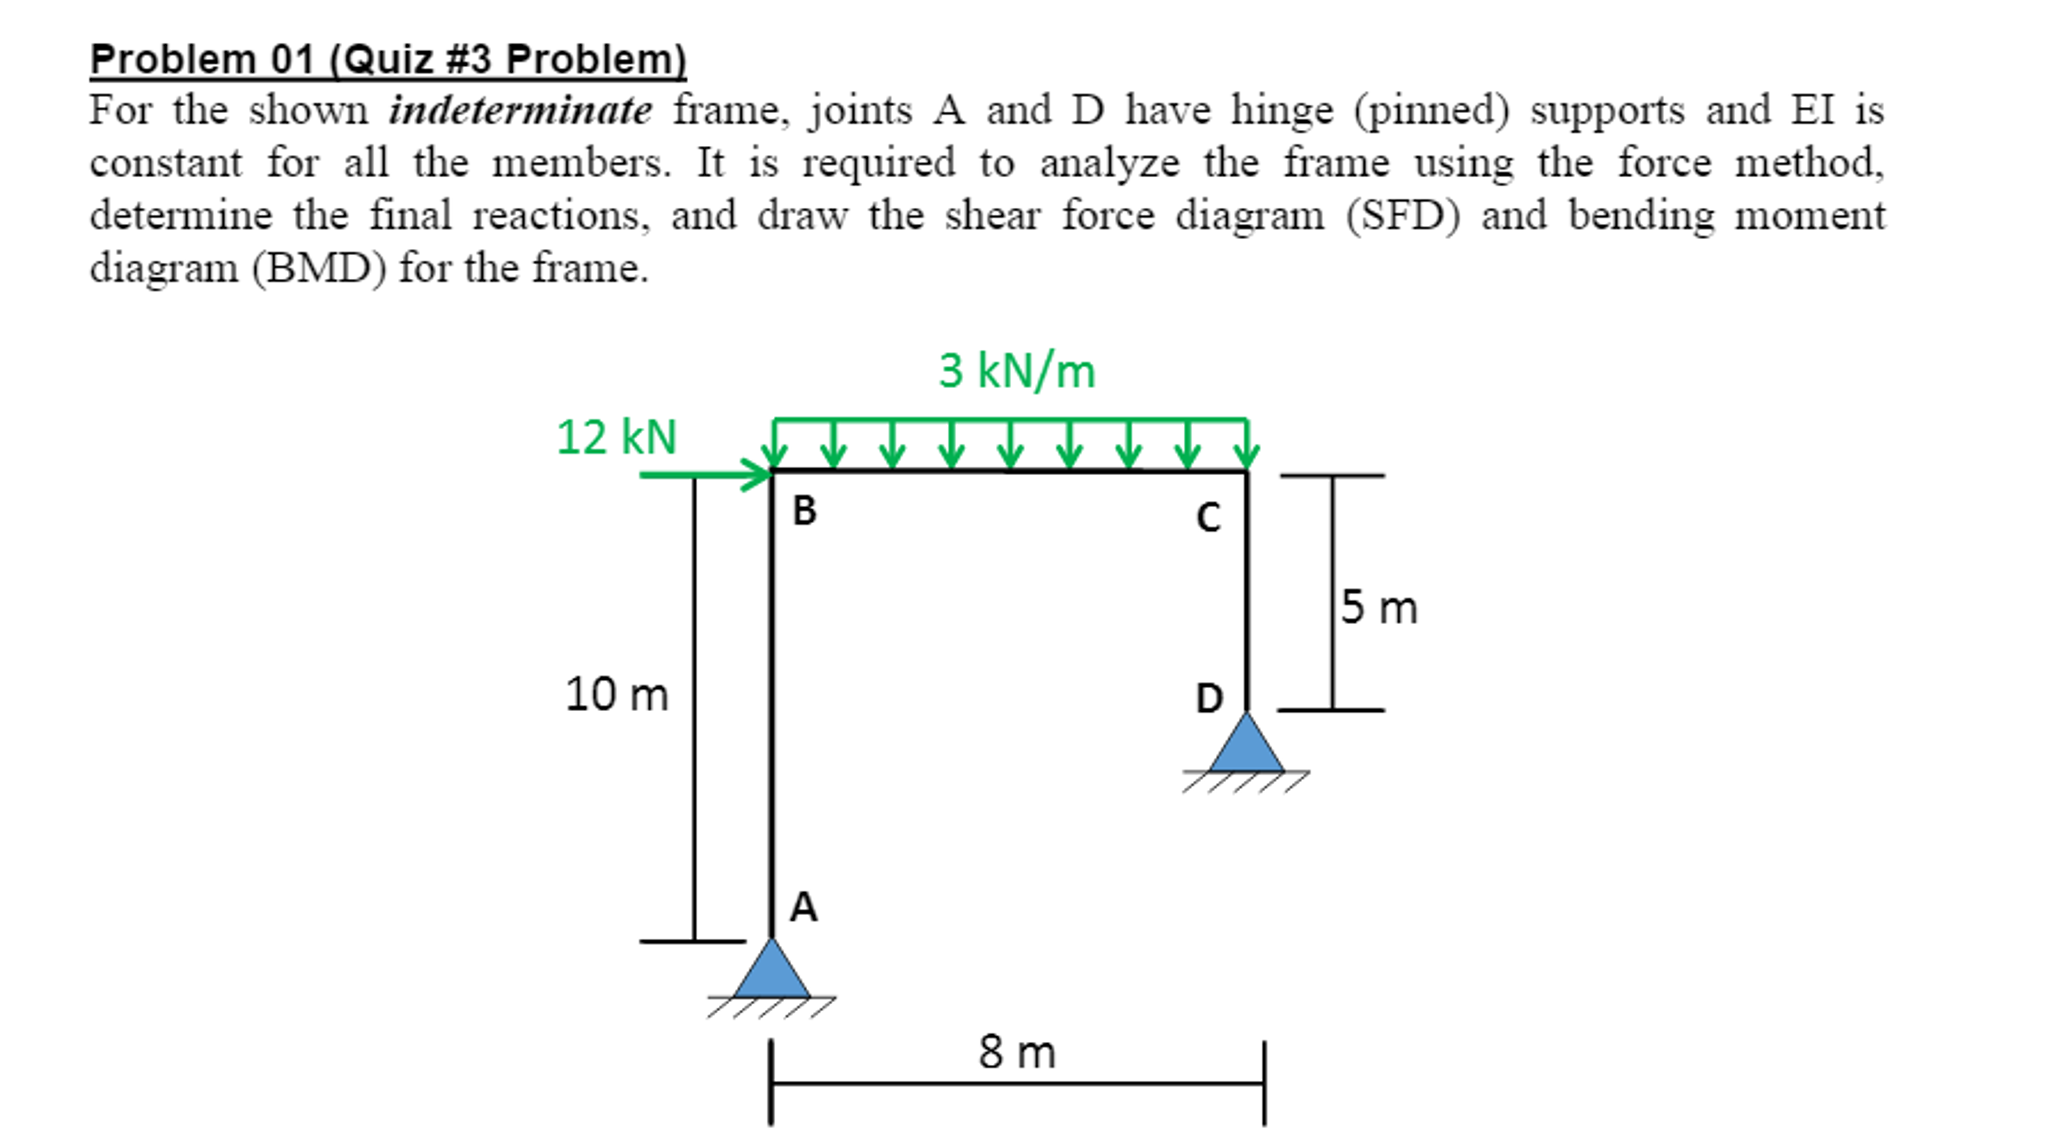 Frame Bending Moment Diagram For The Shown Indeterminate Joints A And D